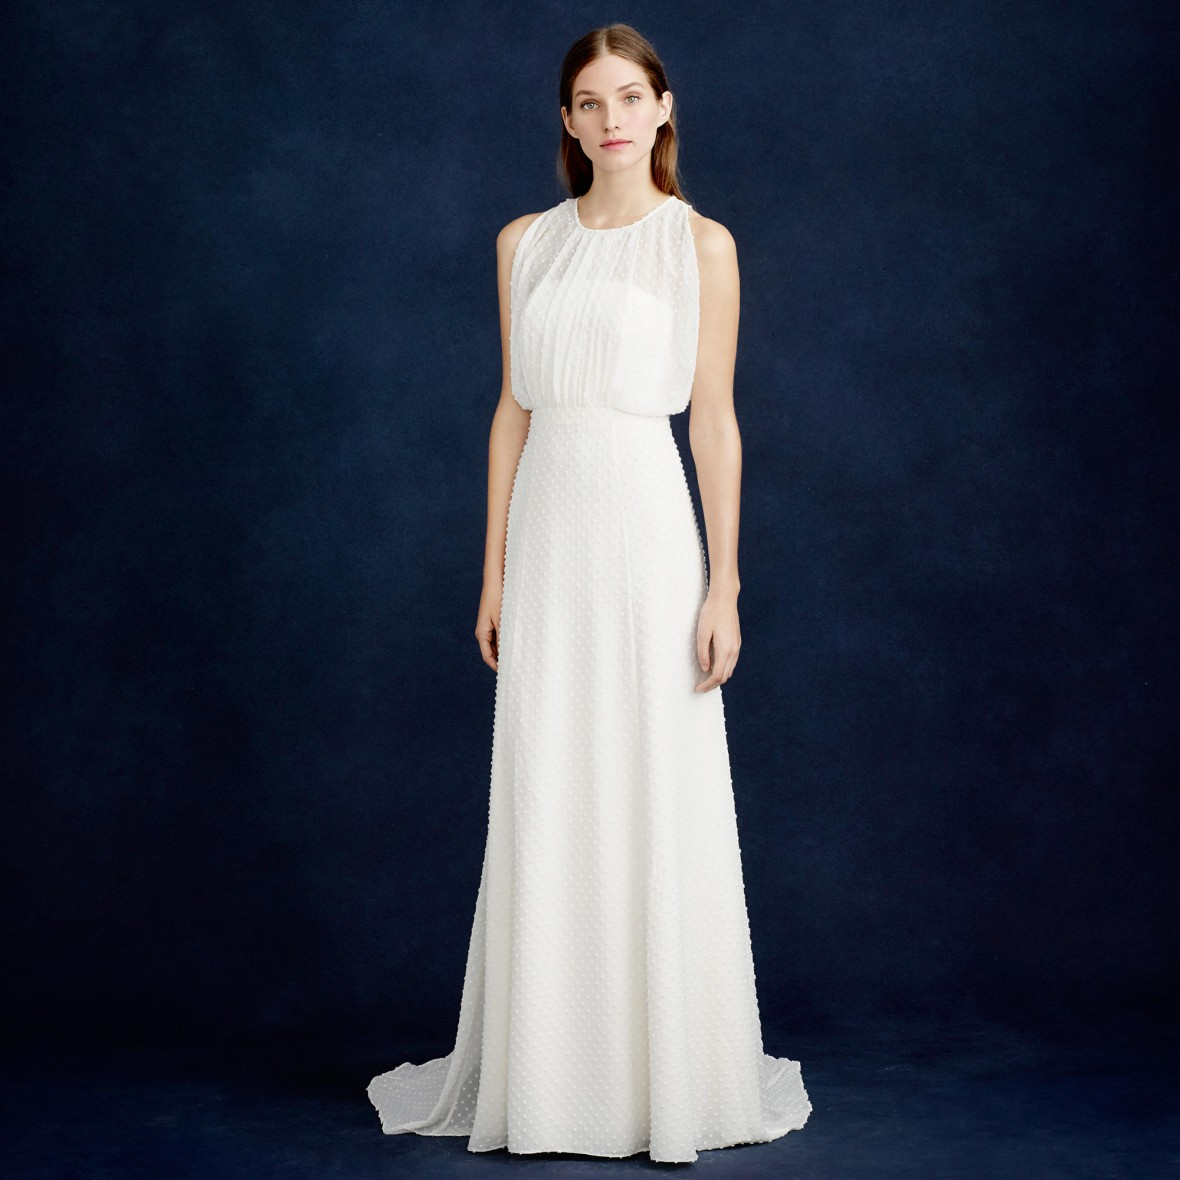 J.Crew Sadie Wedding Dress